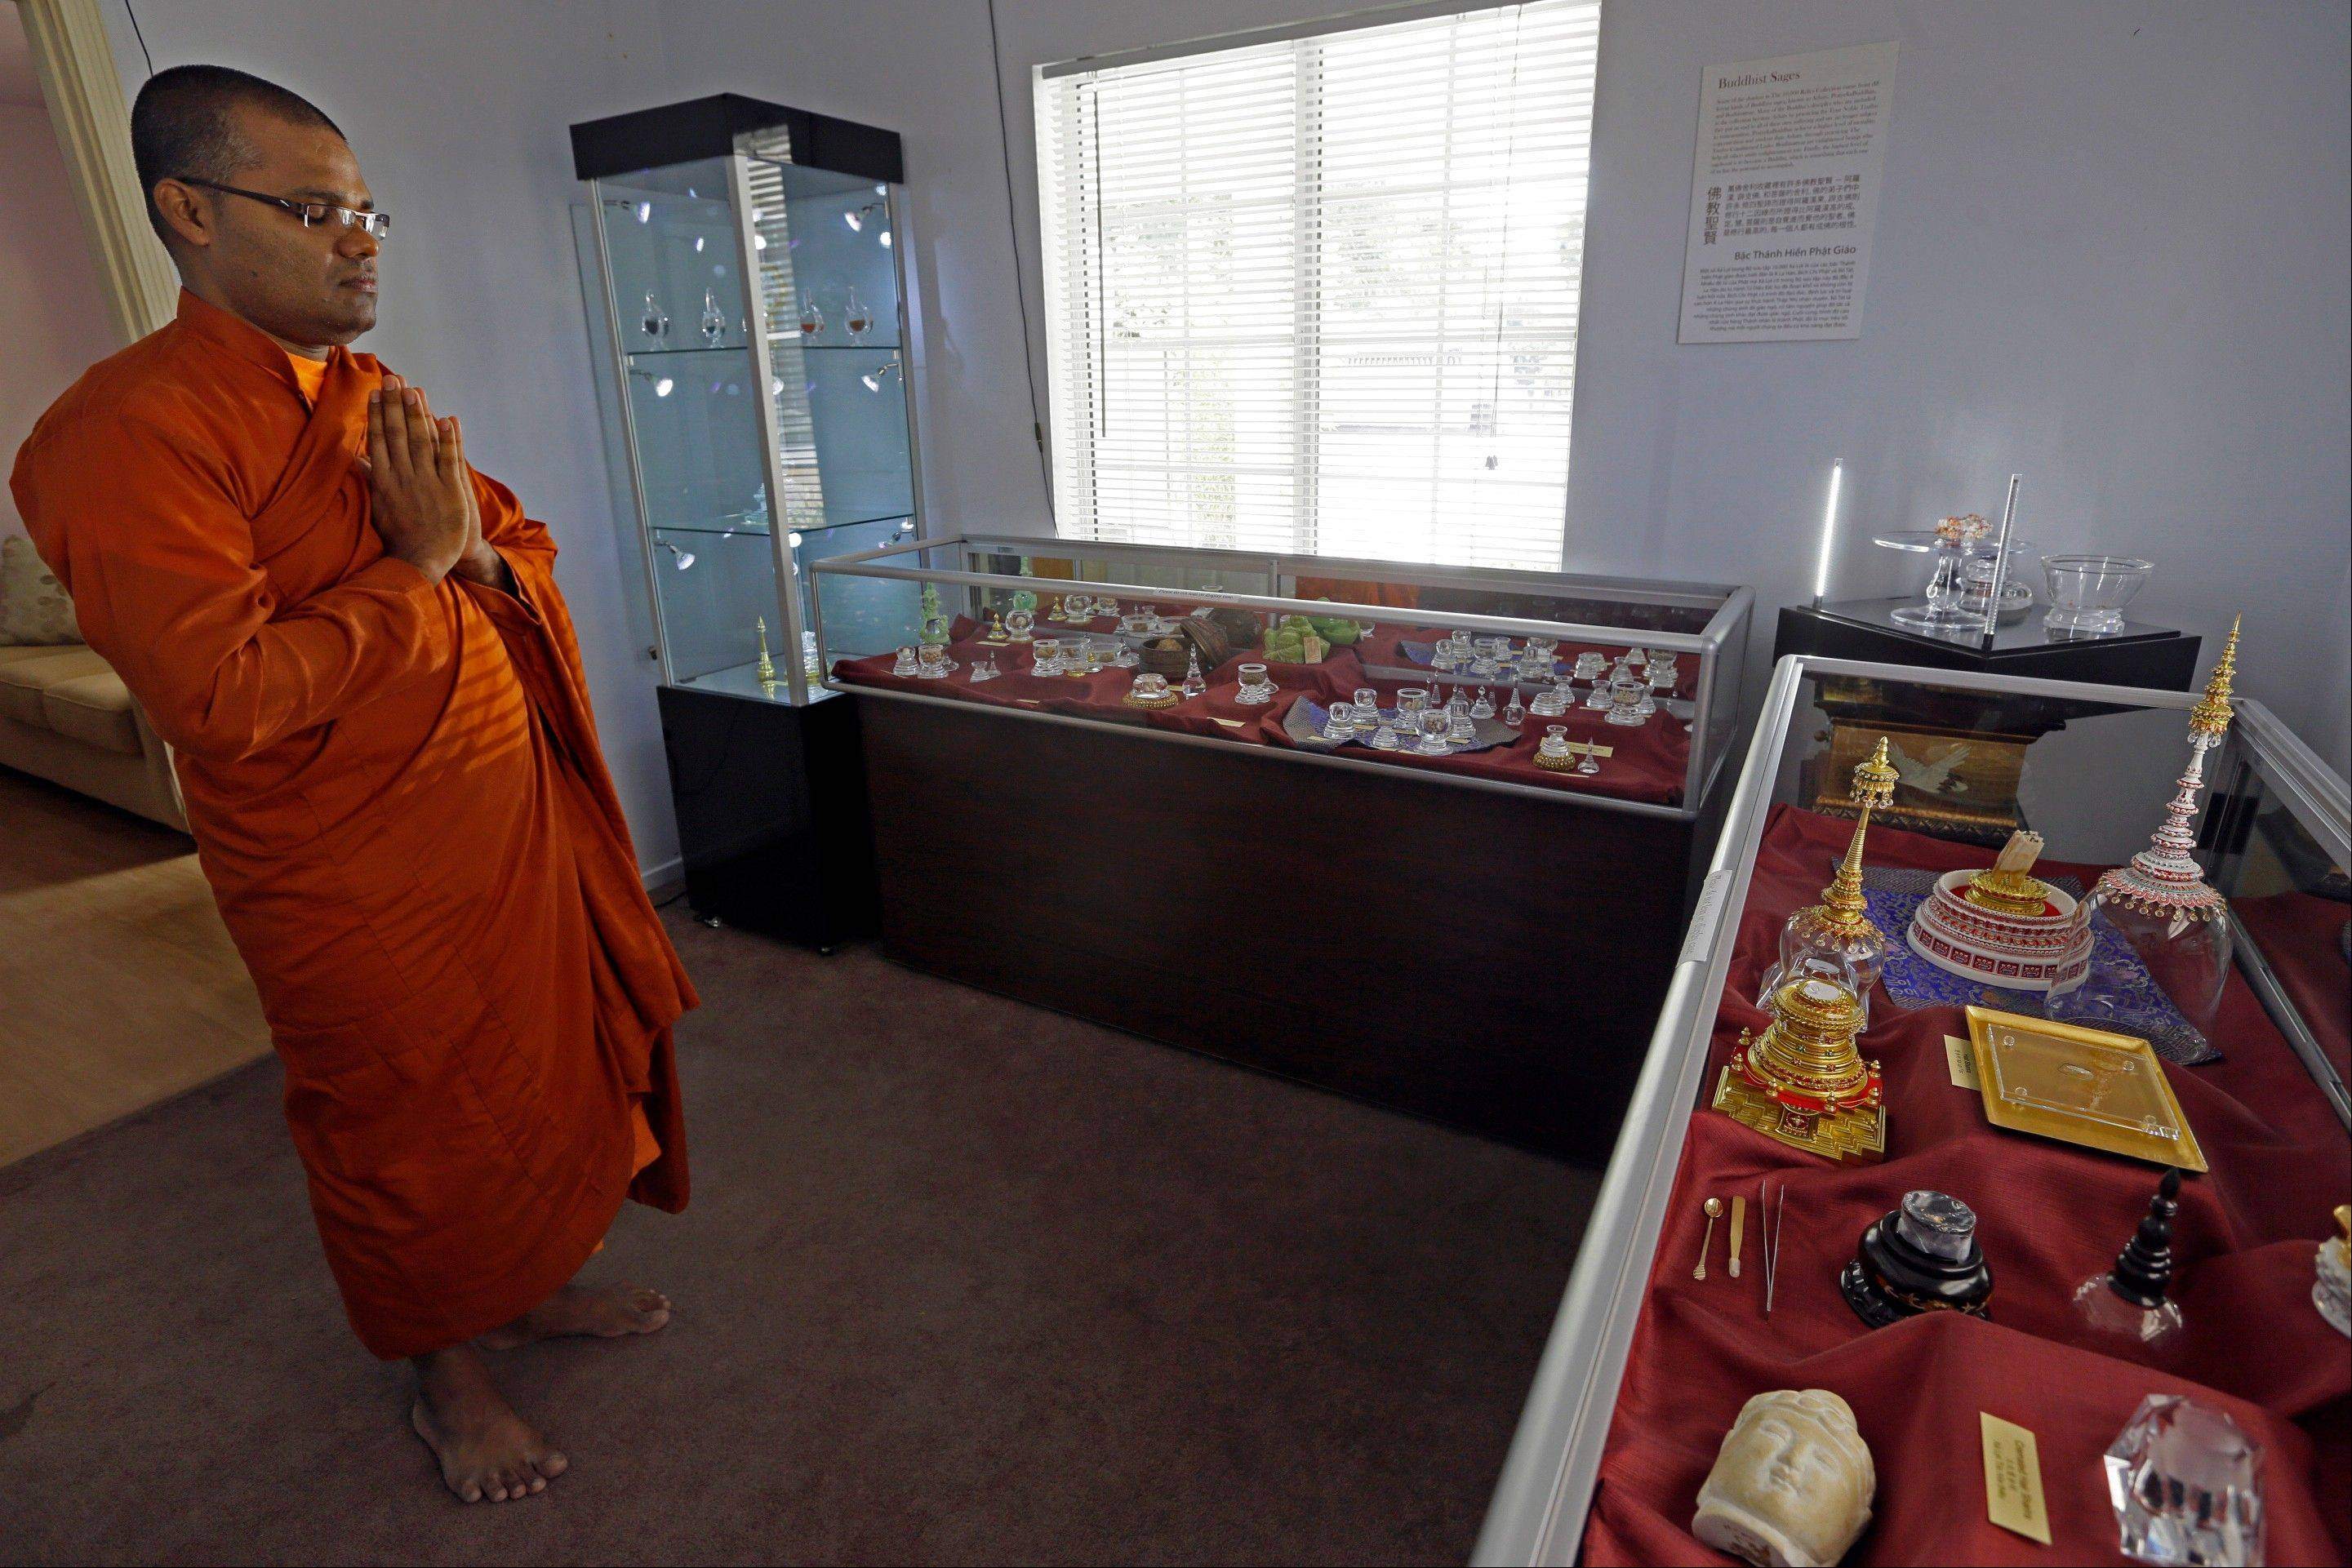 In this Sept. 18, 2013, photo, Bhante Wanarathana prays in a room displaying Buddhist relics at the Lu Mountain Temple in Rosemead, Calif. The temple has become a repository for the colorful crystals and a tooth and a hair that are believed to have come from the body of the Buddha himself.